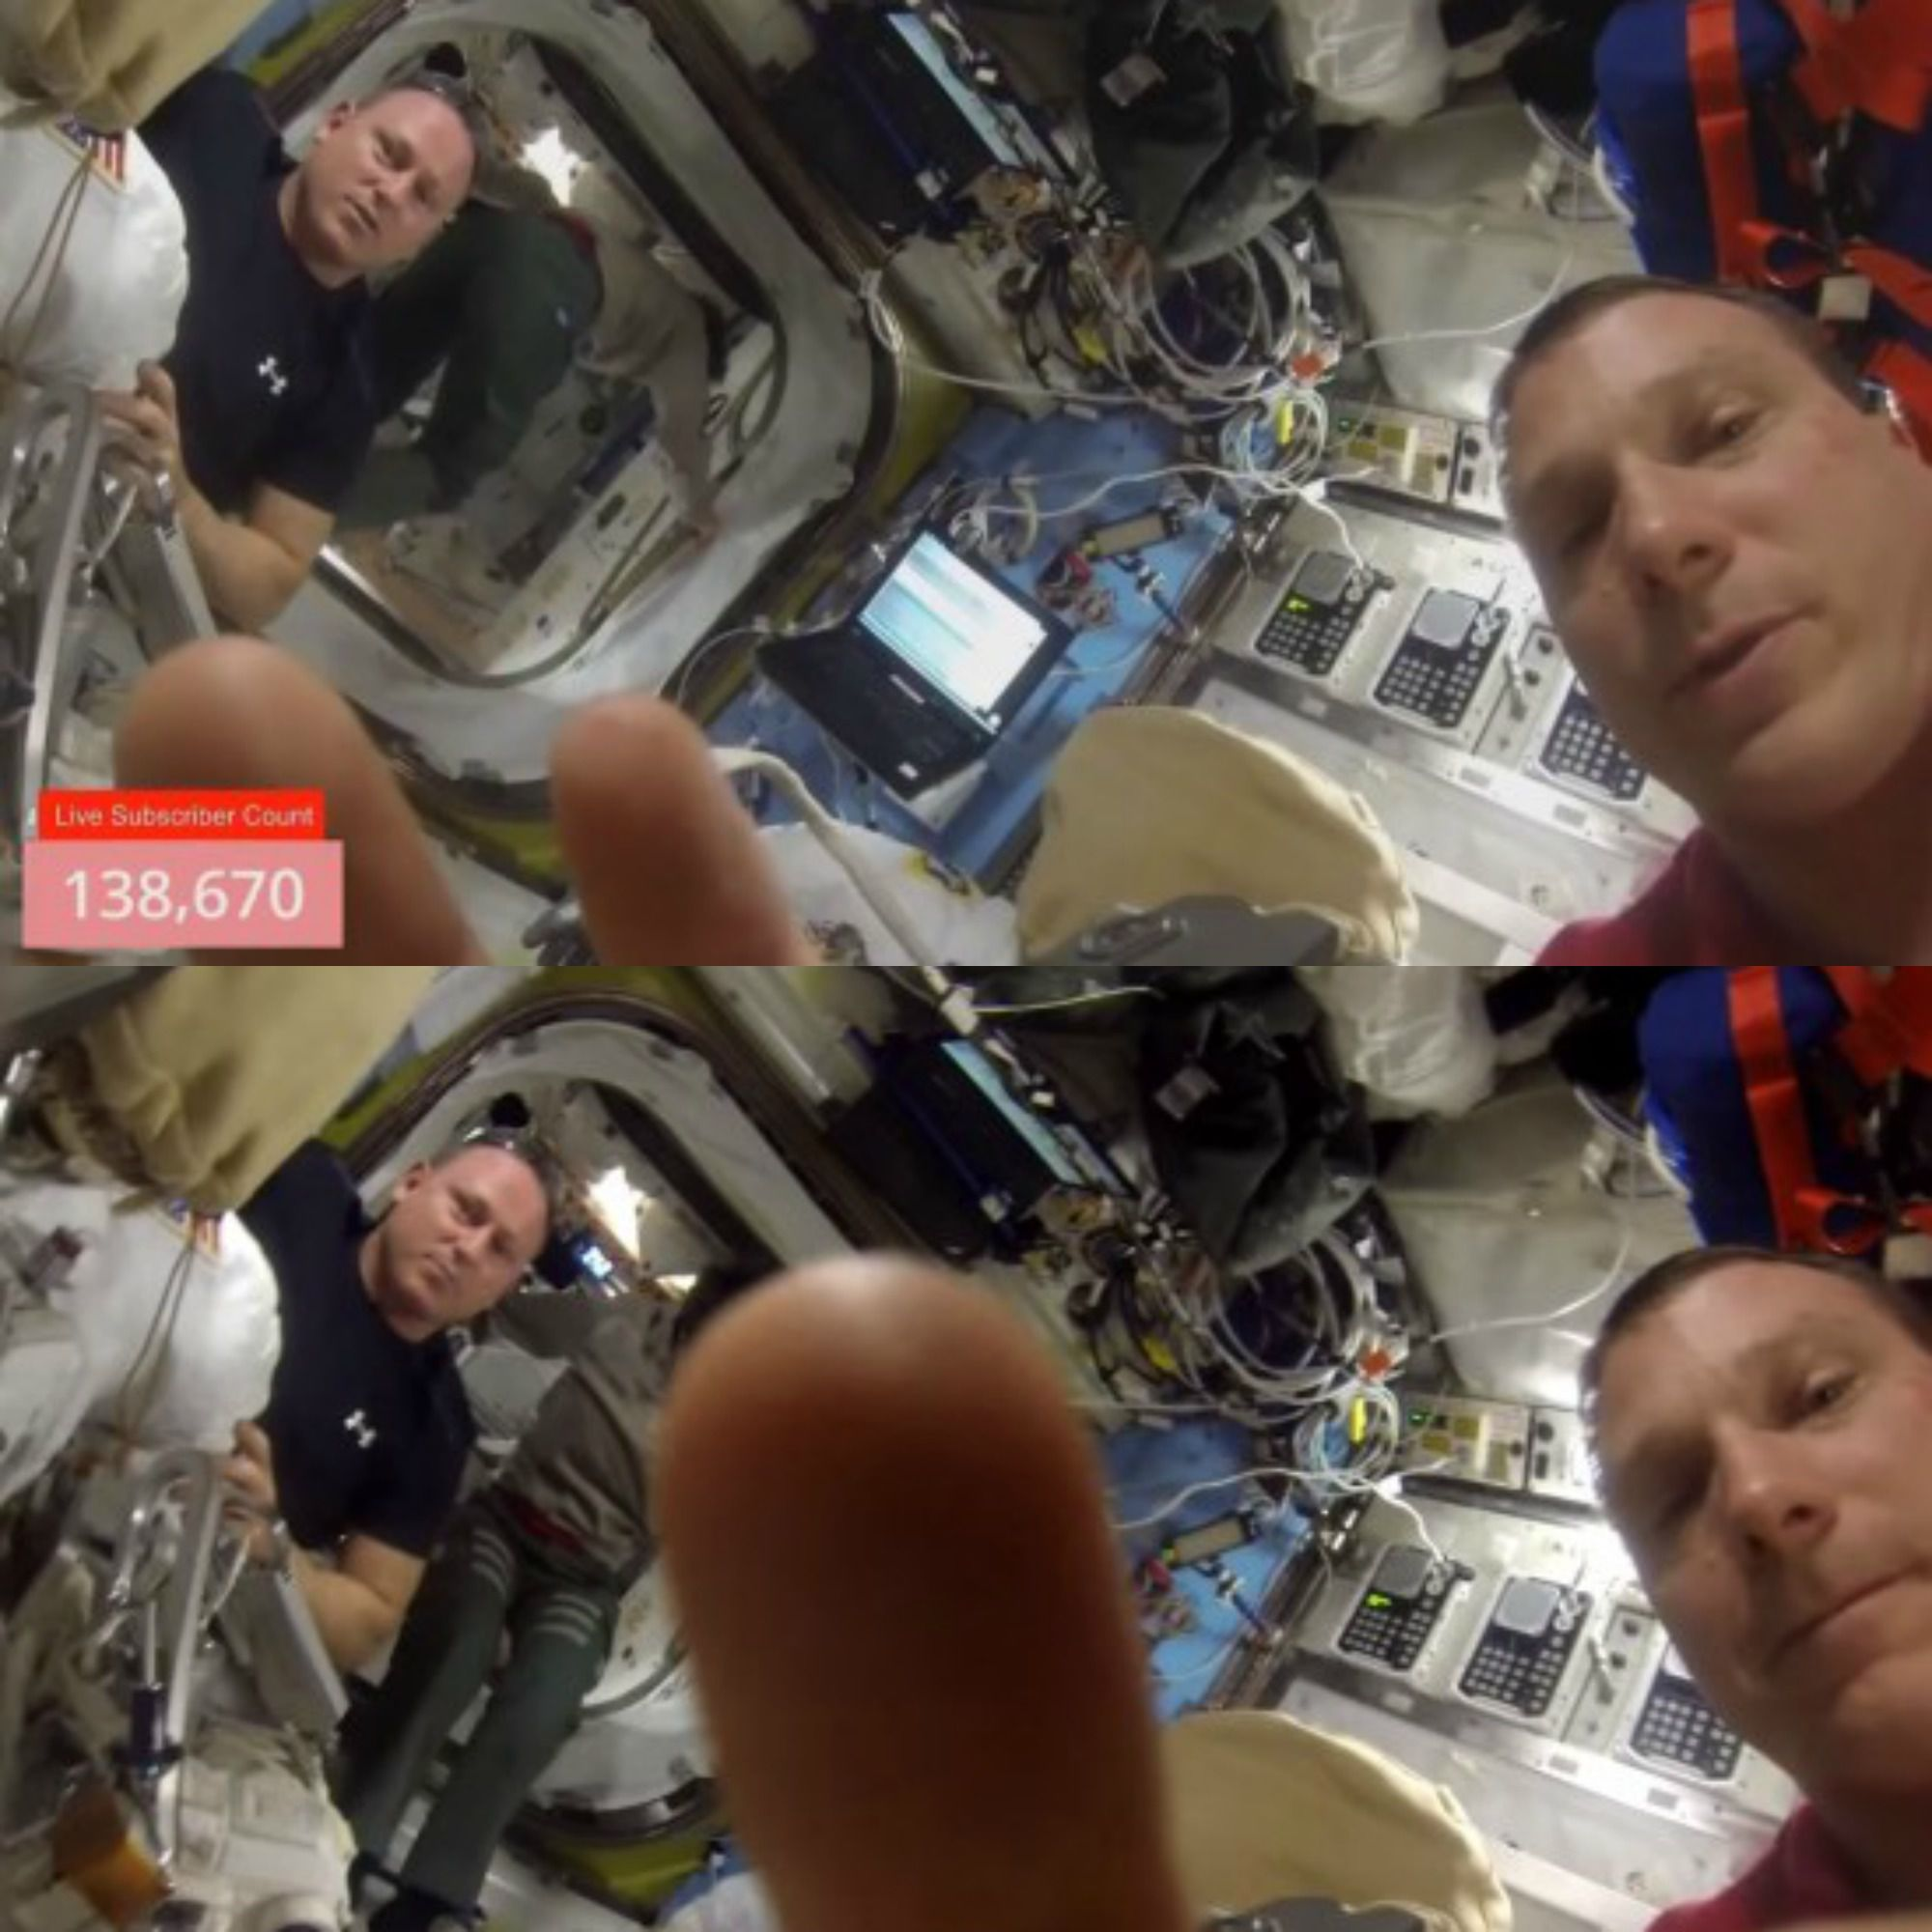 nasa-facebook-live-influenth